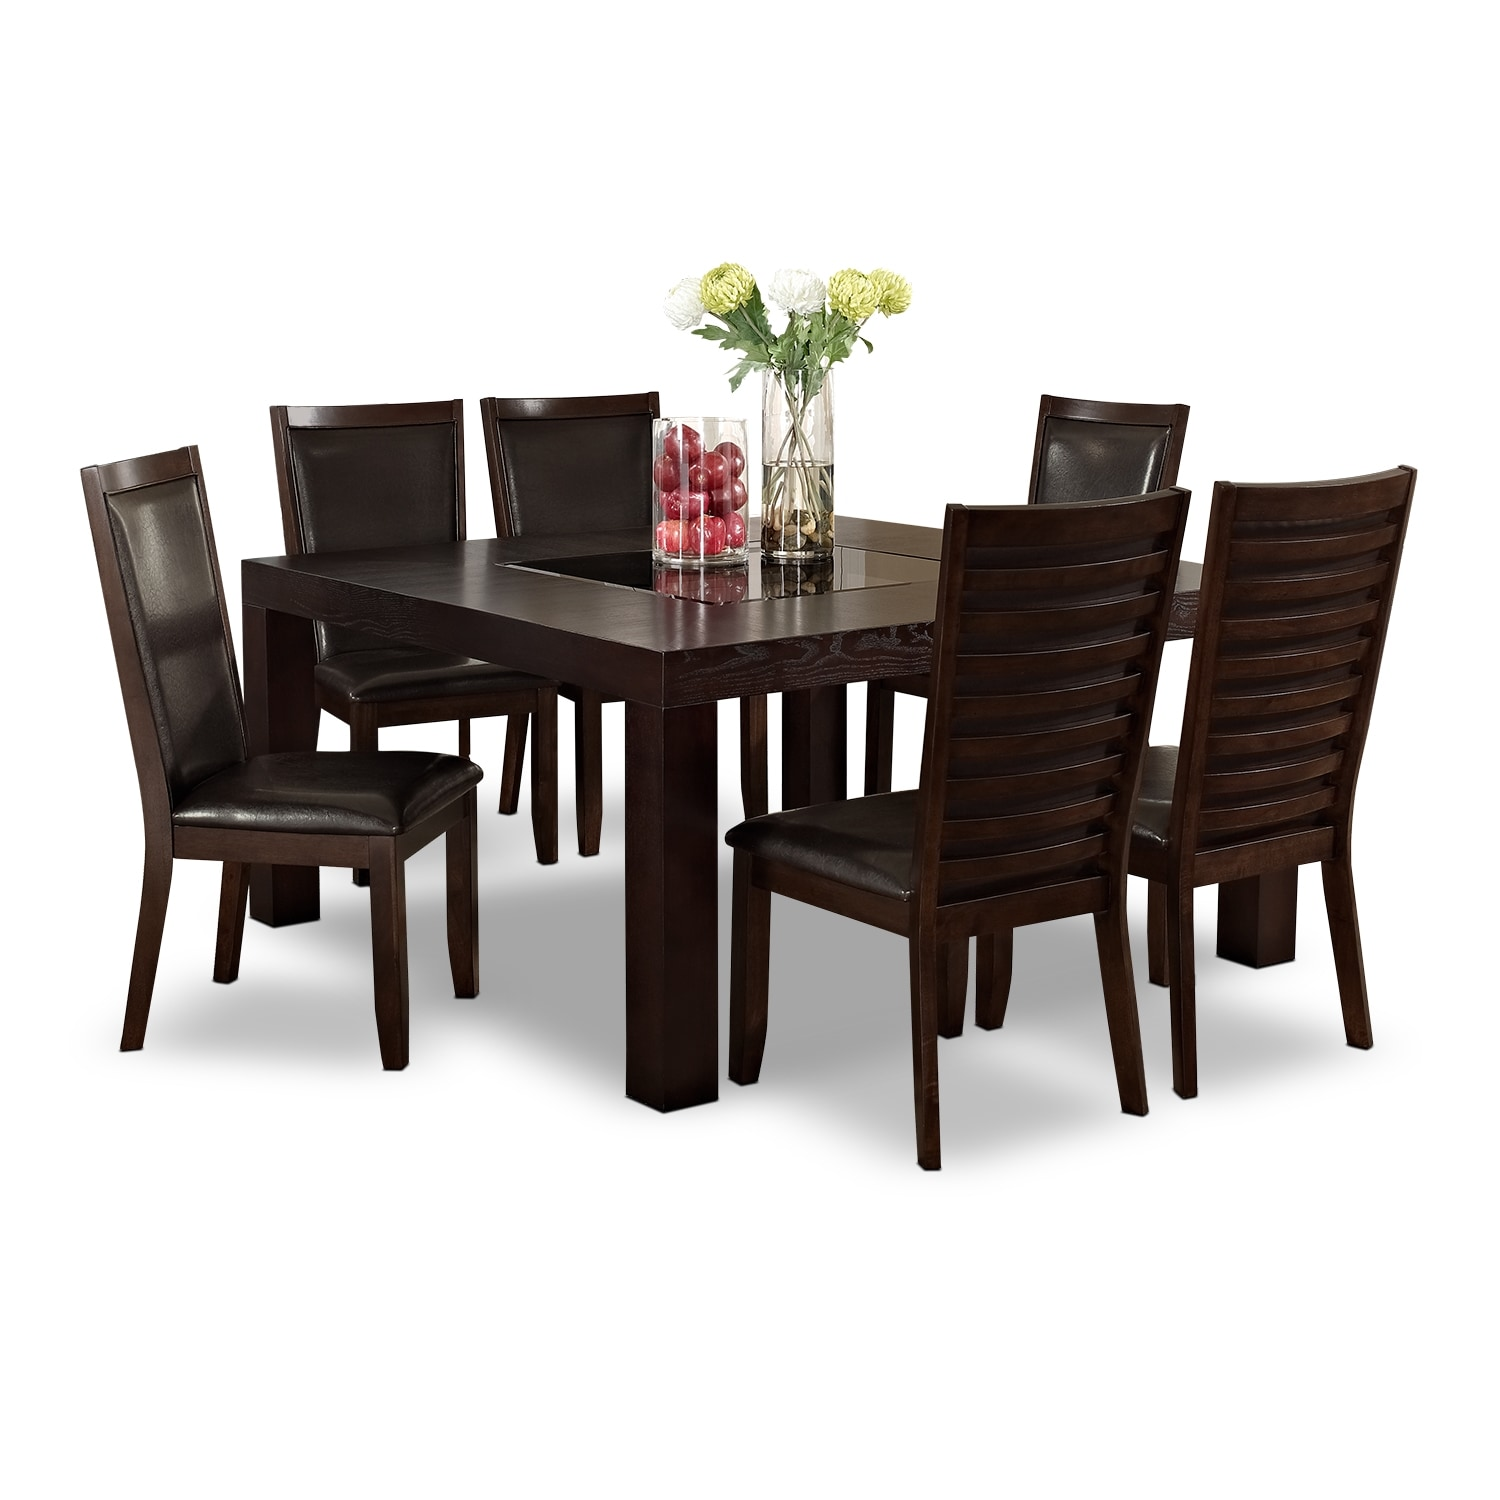 "[Tango Paragon II 7 Pc. Dinette with 60x60"" Table - Merlot and Brown]"